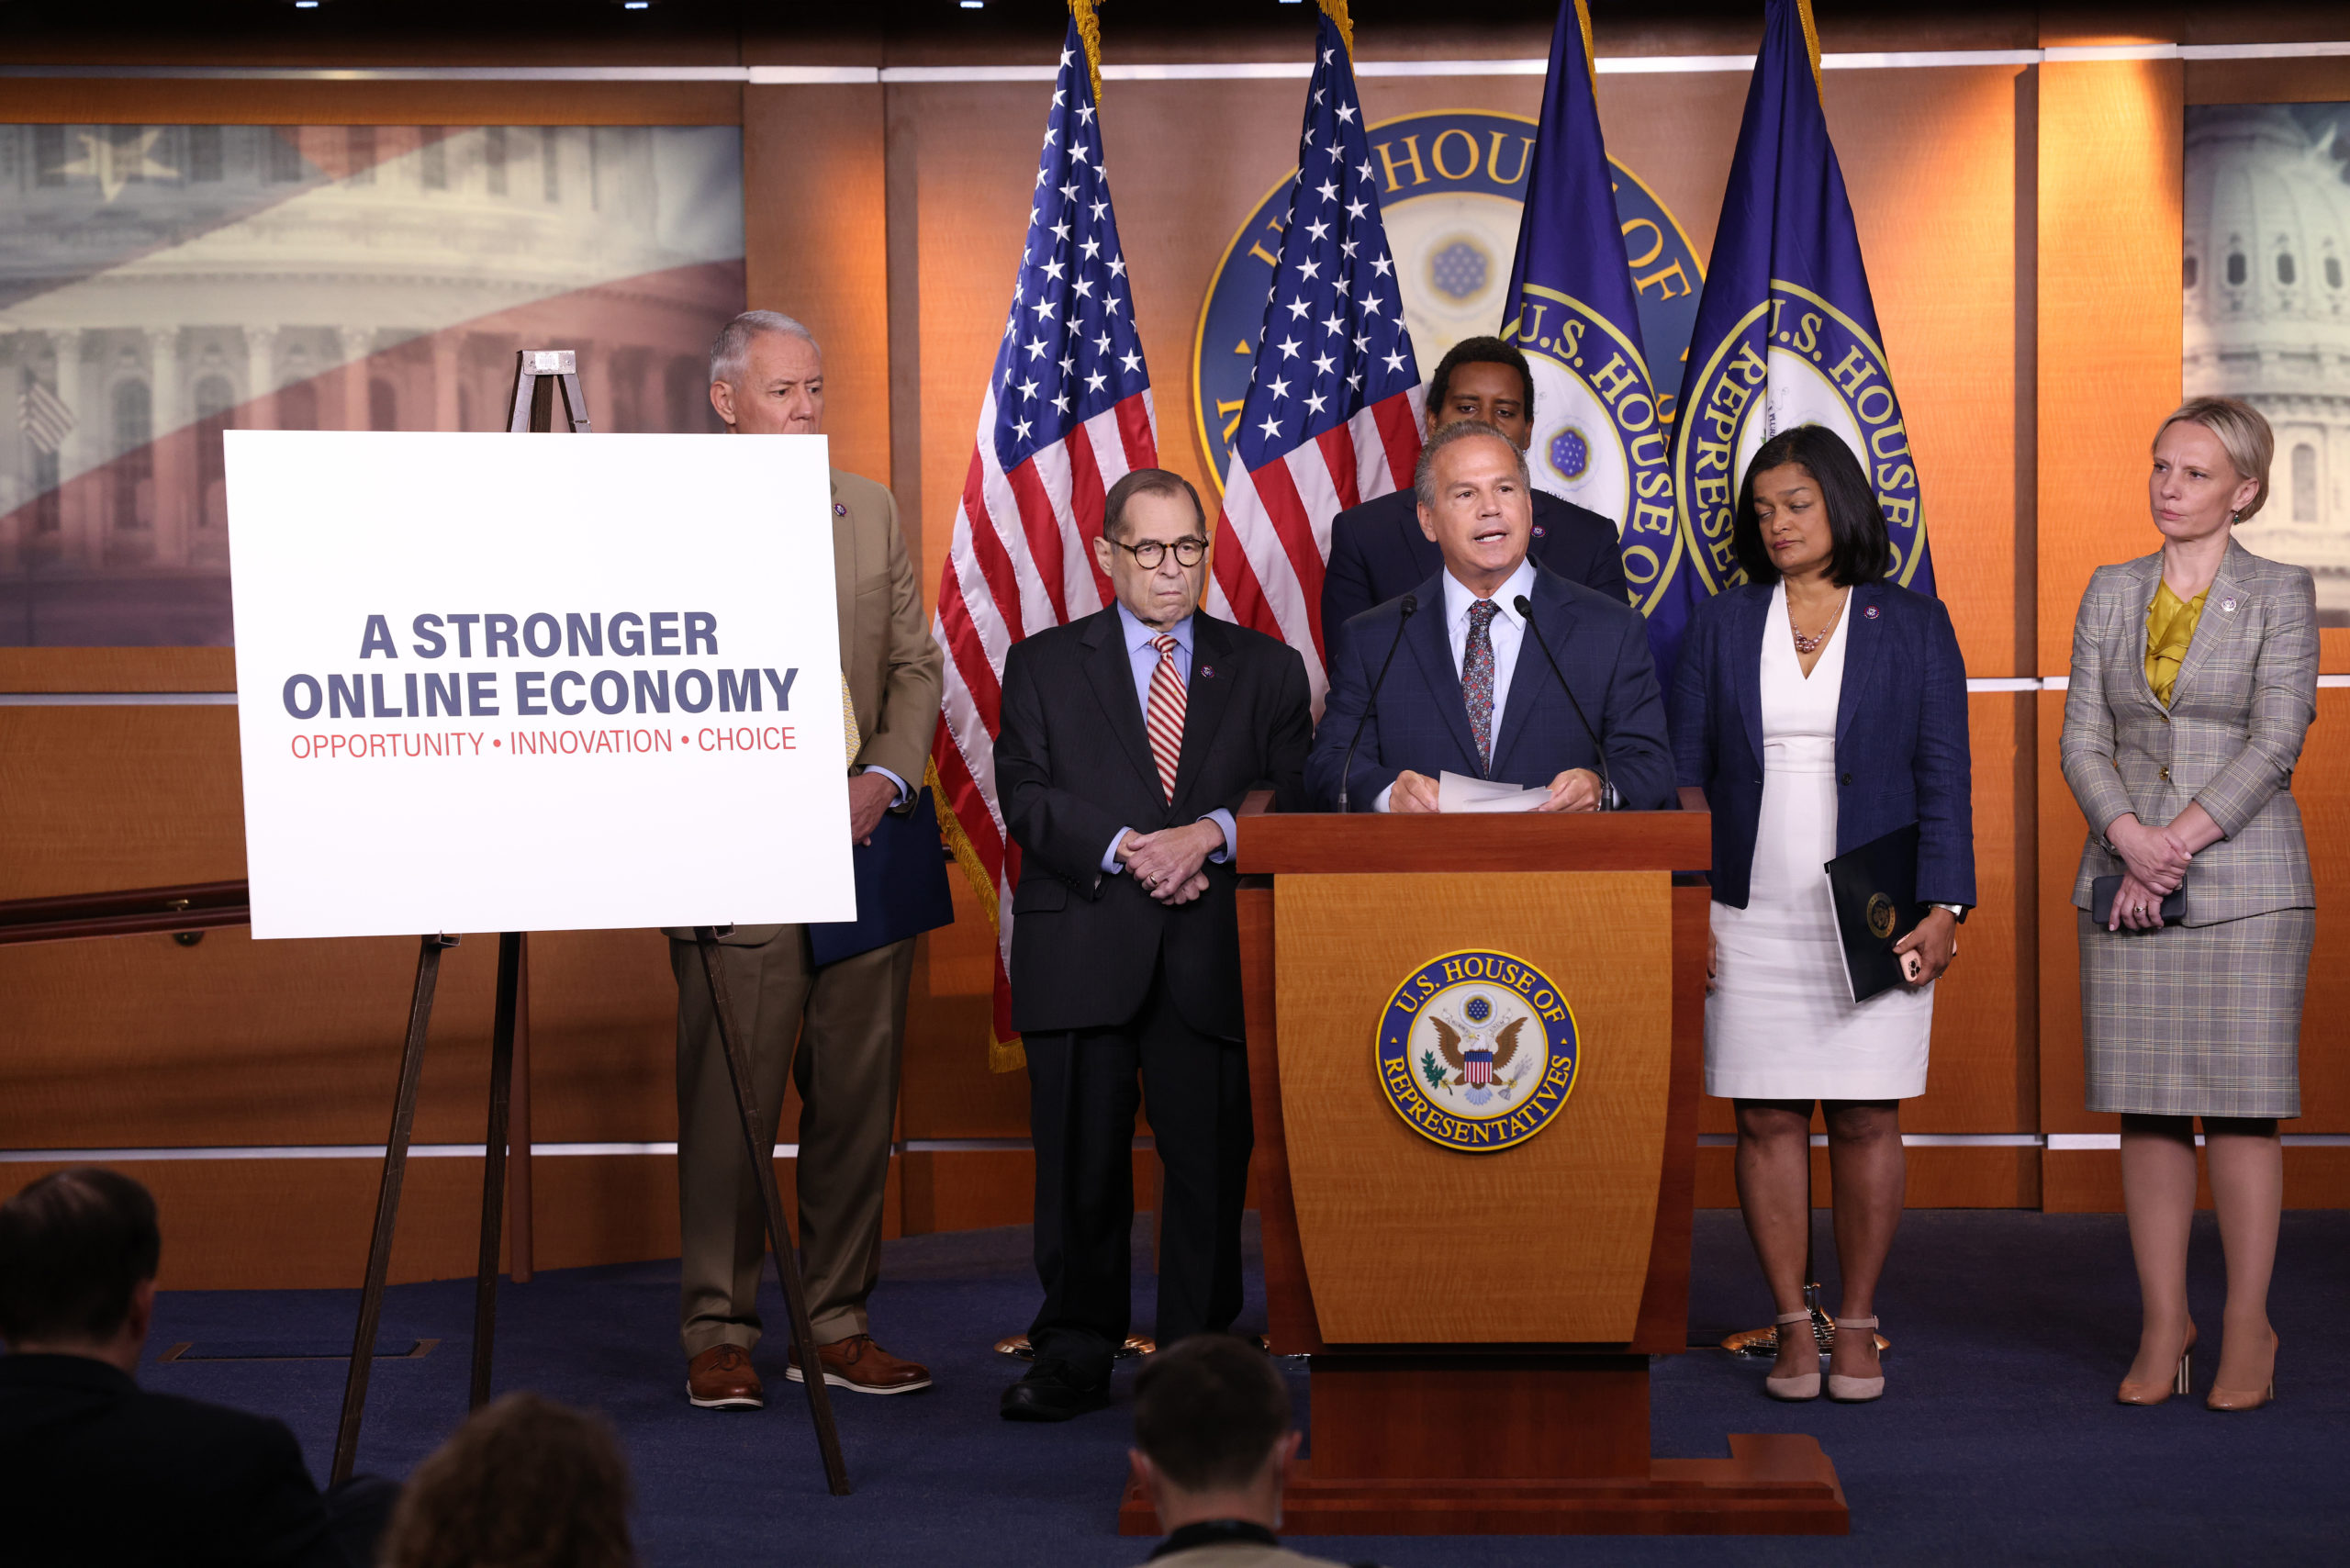 Democratic Rep. David Cicilline speaks about antitrust legislation targeting Big tech during a news conference on June 16. (Win McNamee/Getty Images)